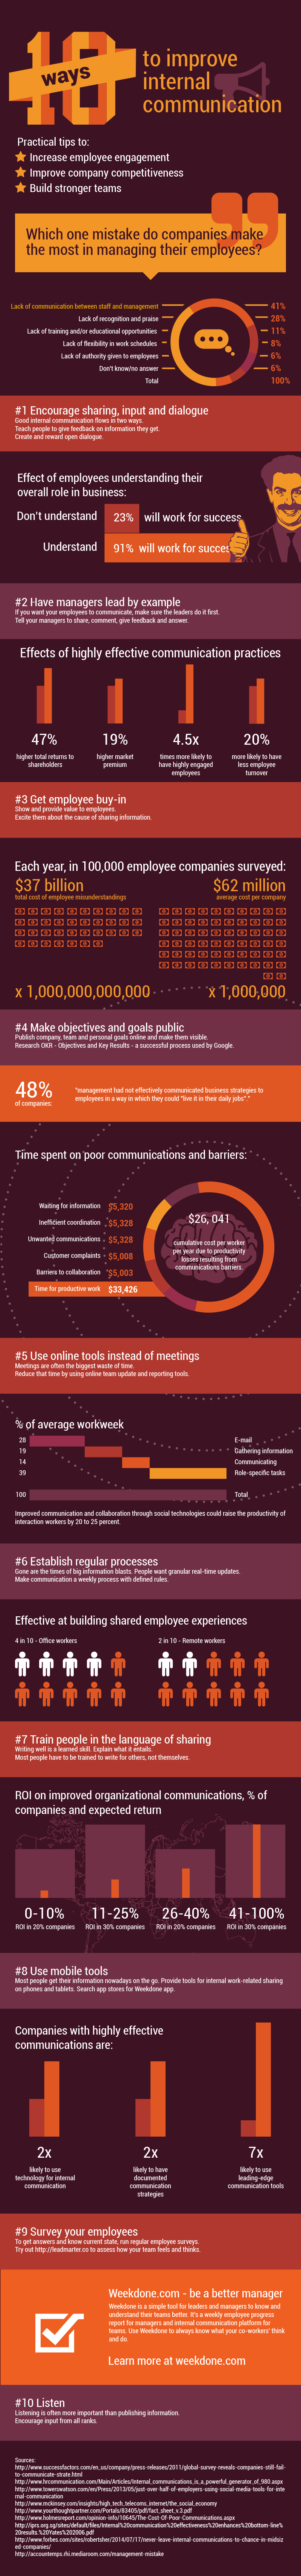 Infographic: 10 Ways to Improve Internal Communications